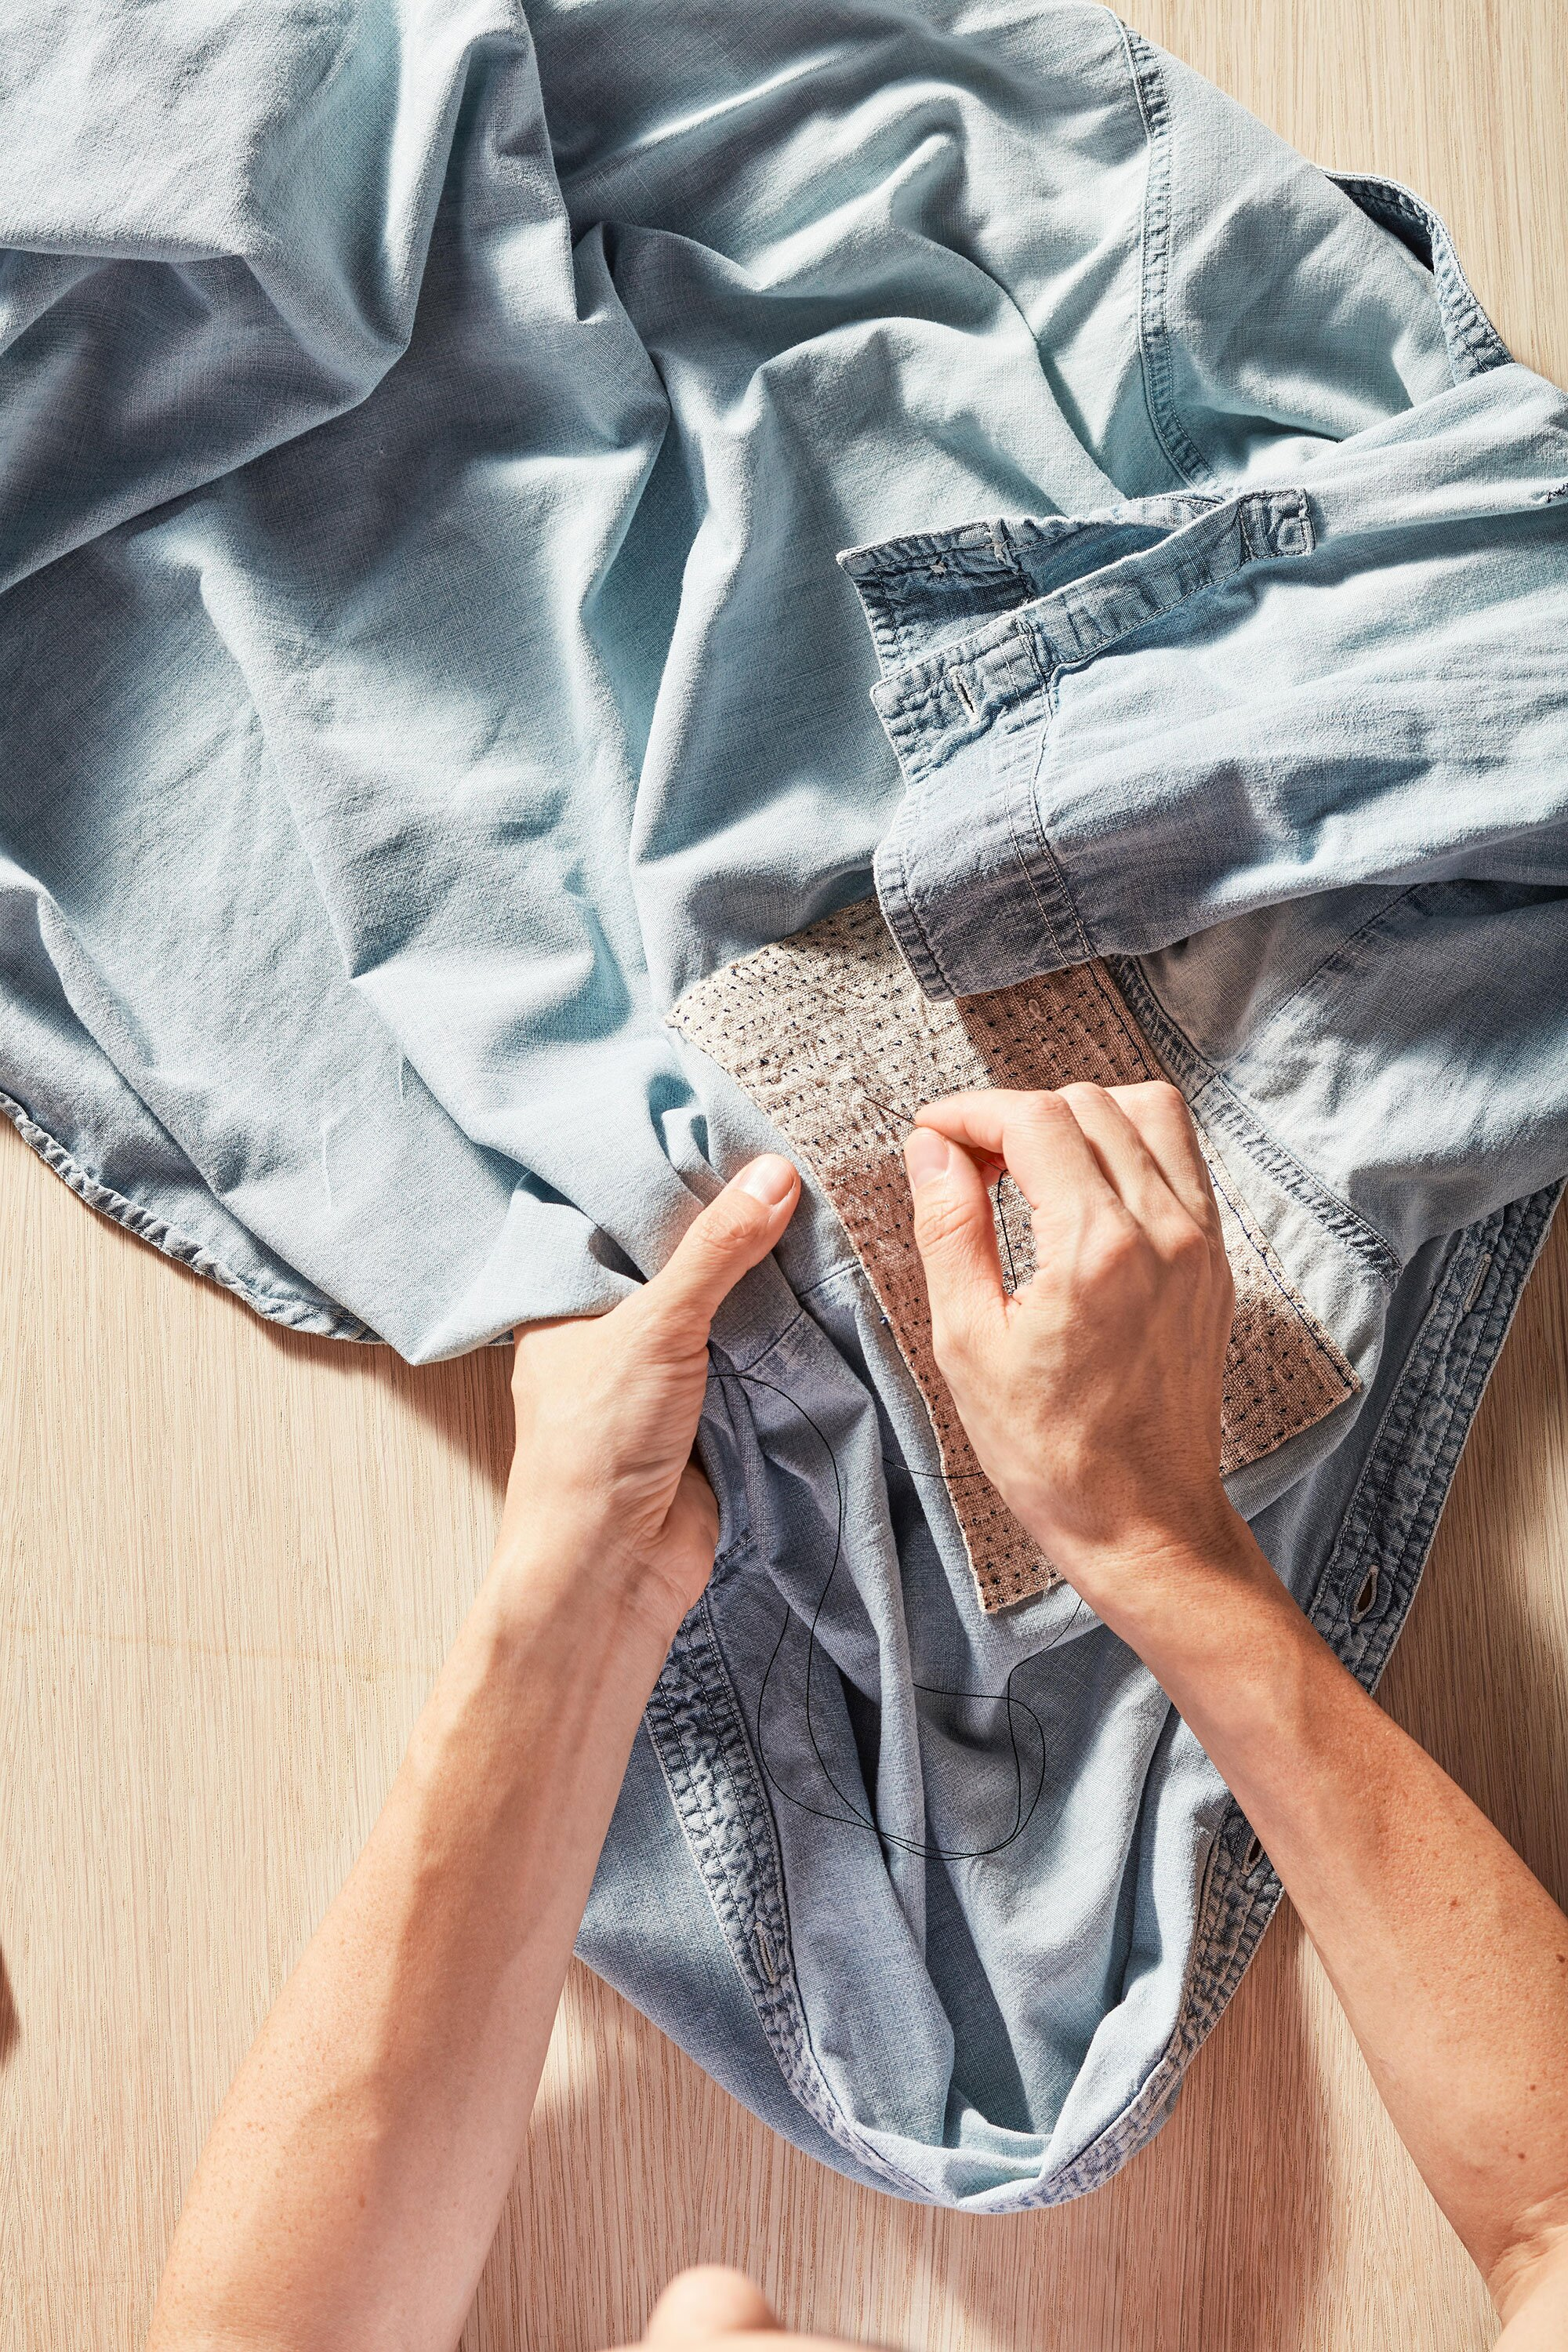 Clothing Repair 101 How To Patch A Hole Mend Seam And